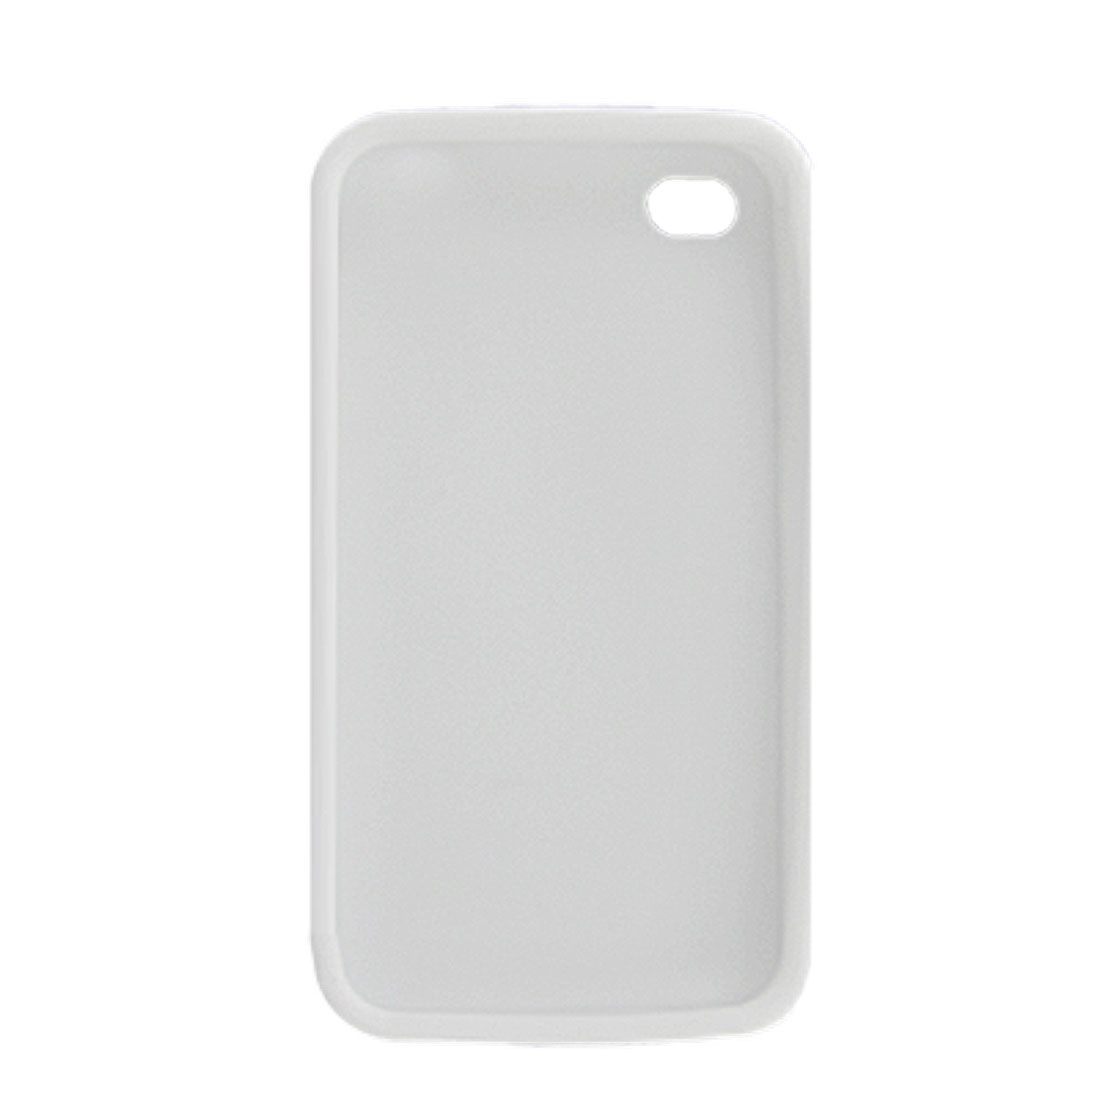 Clear White Silicone Skin Shield Case for Apple iPhone 4 4G